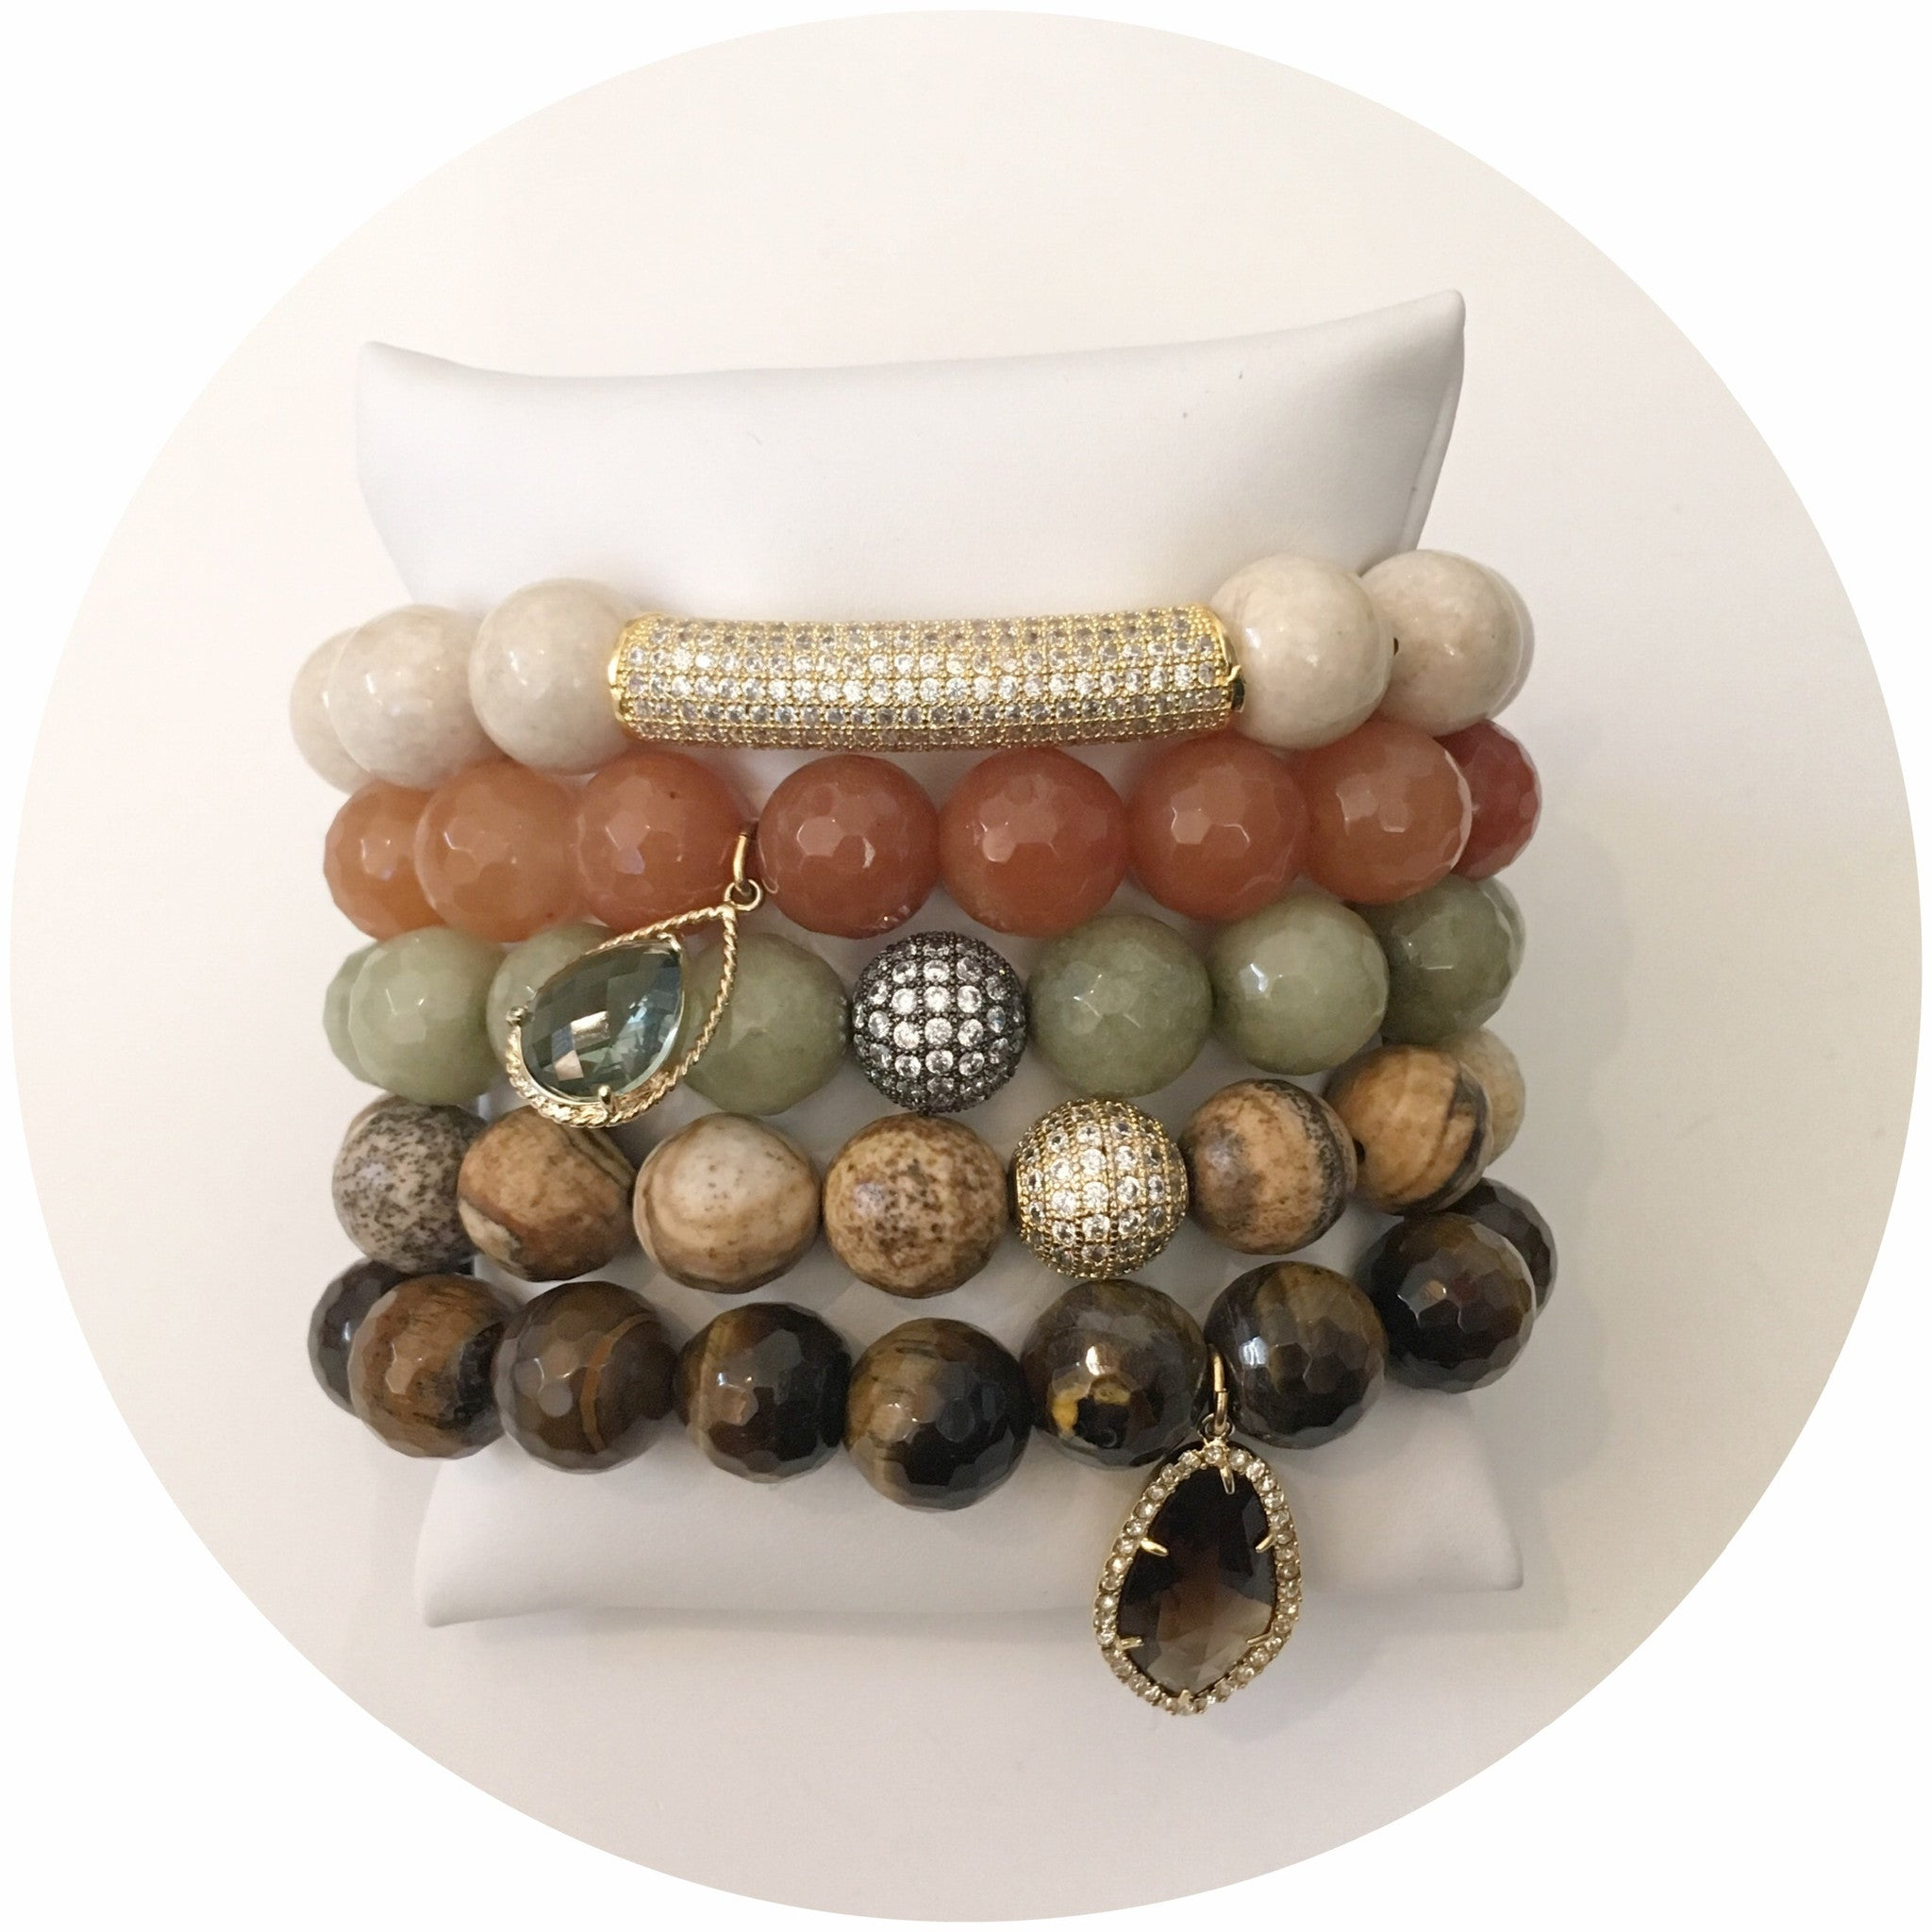 Oaktree Armparty - Oriana Lamarca LLC